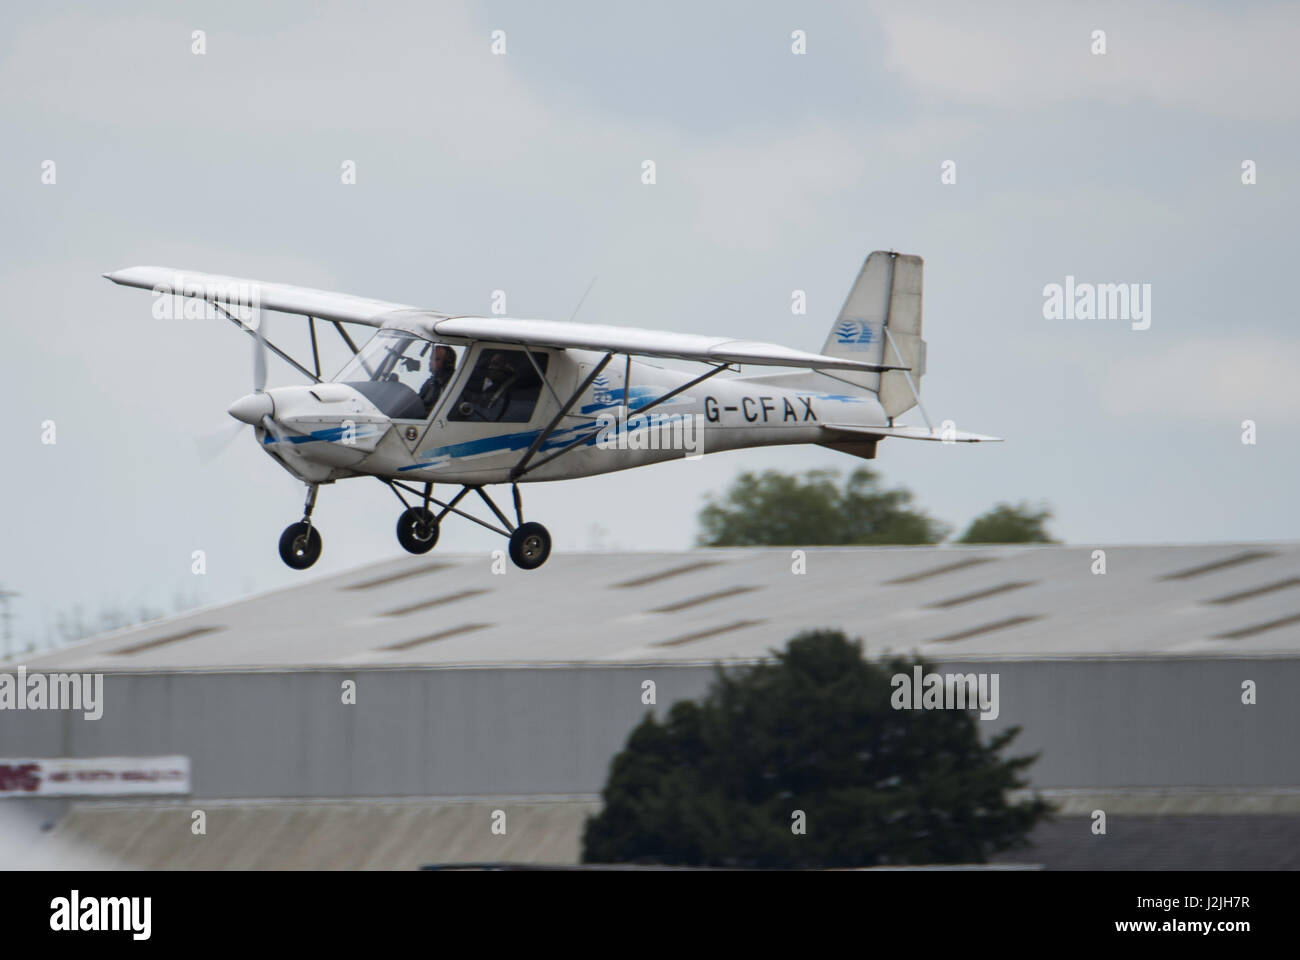 G-CFAX Ikarus Comco C-42 (0712-6933) comes in to land at North weal airfield - Stock Image